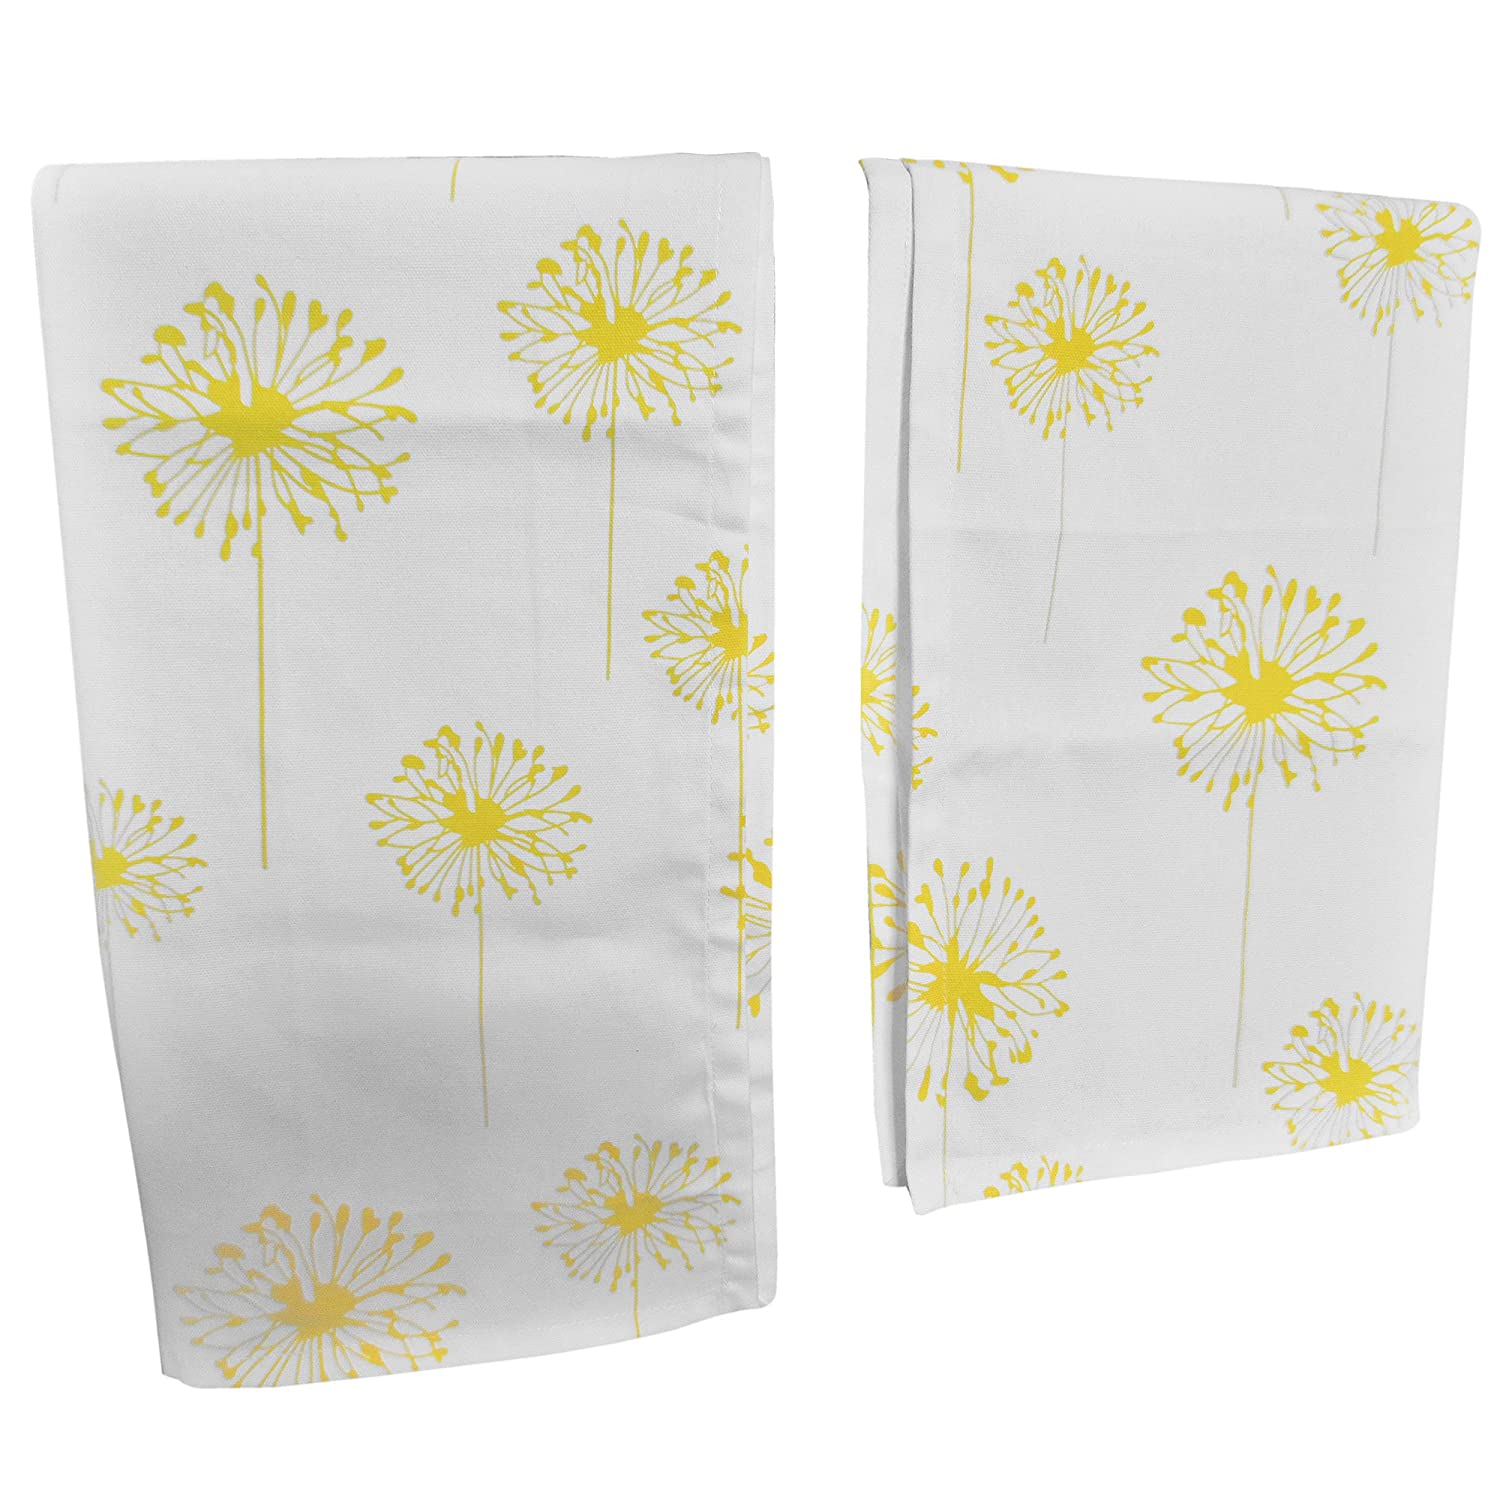 """Crabtree Collection Premium Quality Set of 2 Kitchen Dish Towels 100% Cotton Absorbent Tea Towels – Classy Yellow Dandelion Design – Ideal 18"""" x 28"""" Dimensions …"""